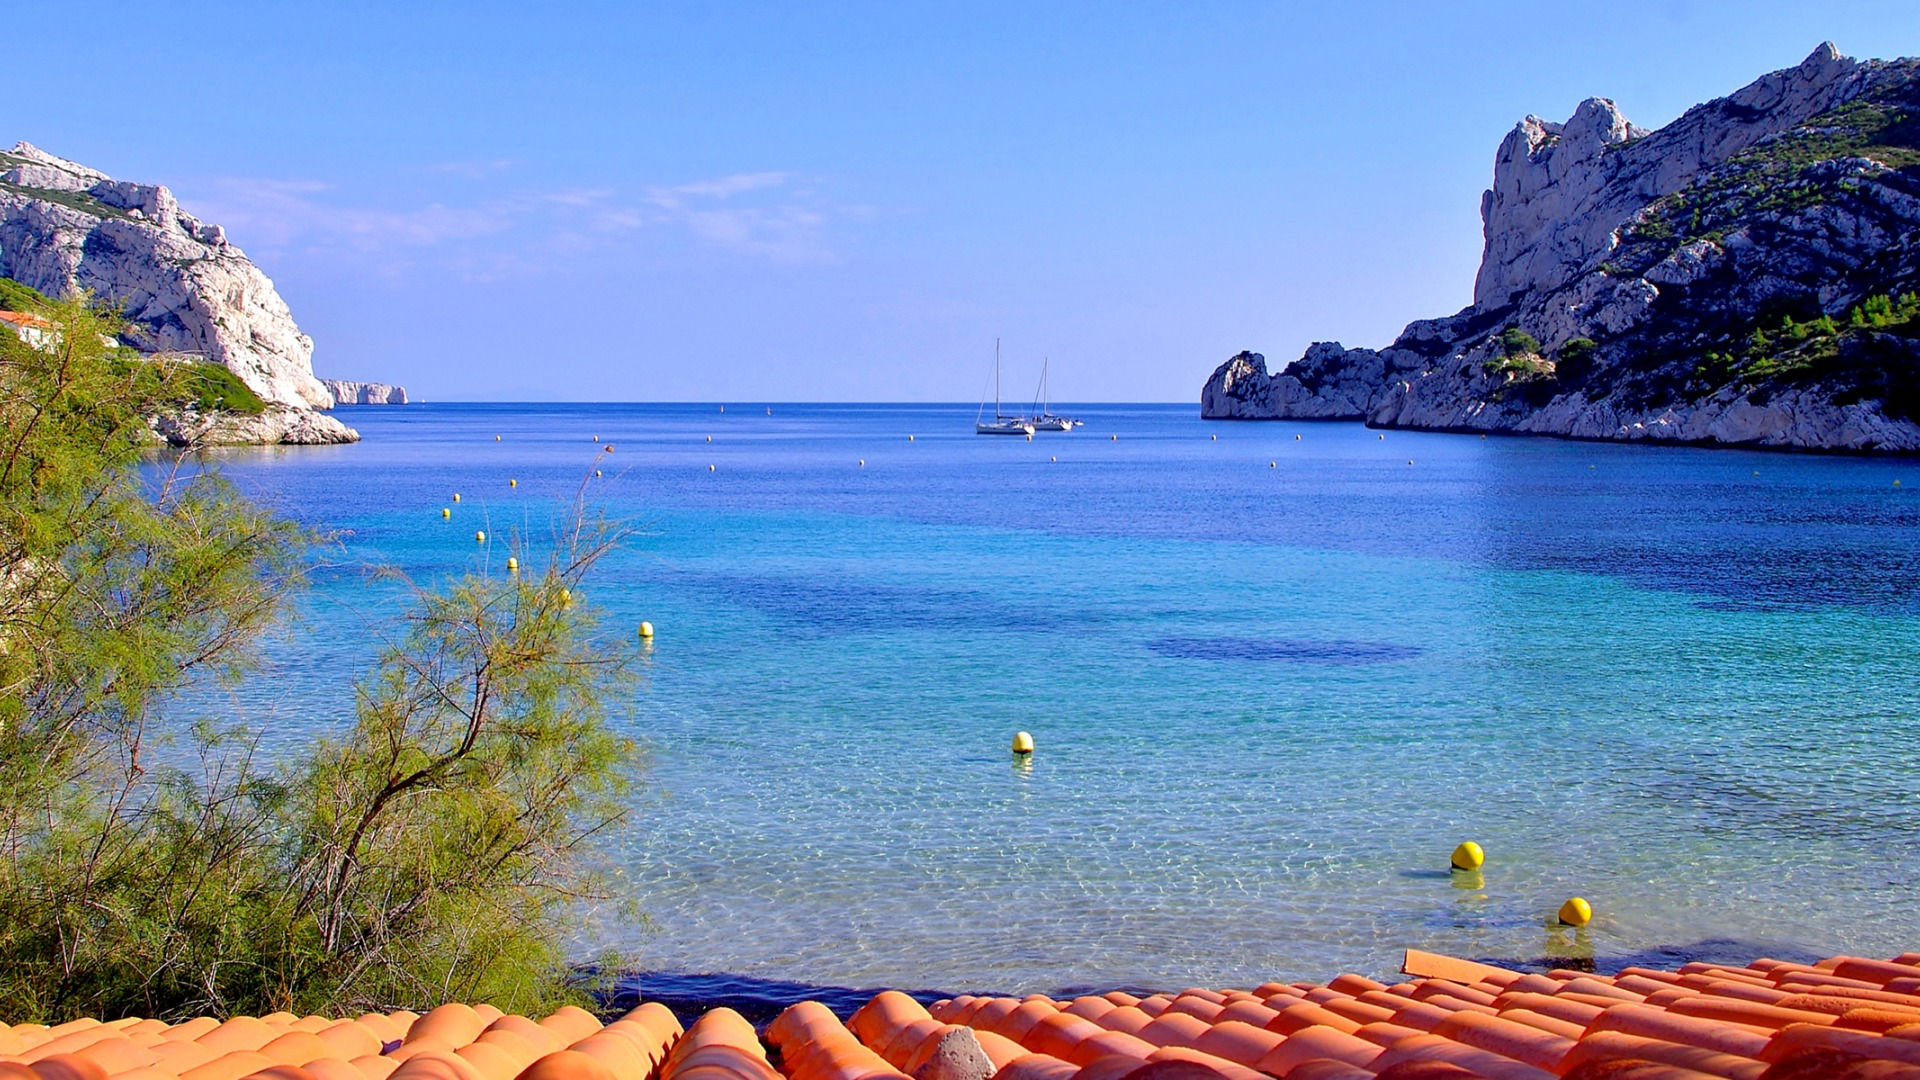 Download-roof-sea-rocks-France-Bay-yacht-tile-section-Resolution-1920x1080-wallpaper-wp3605121